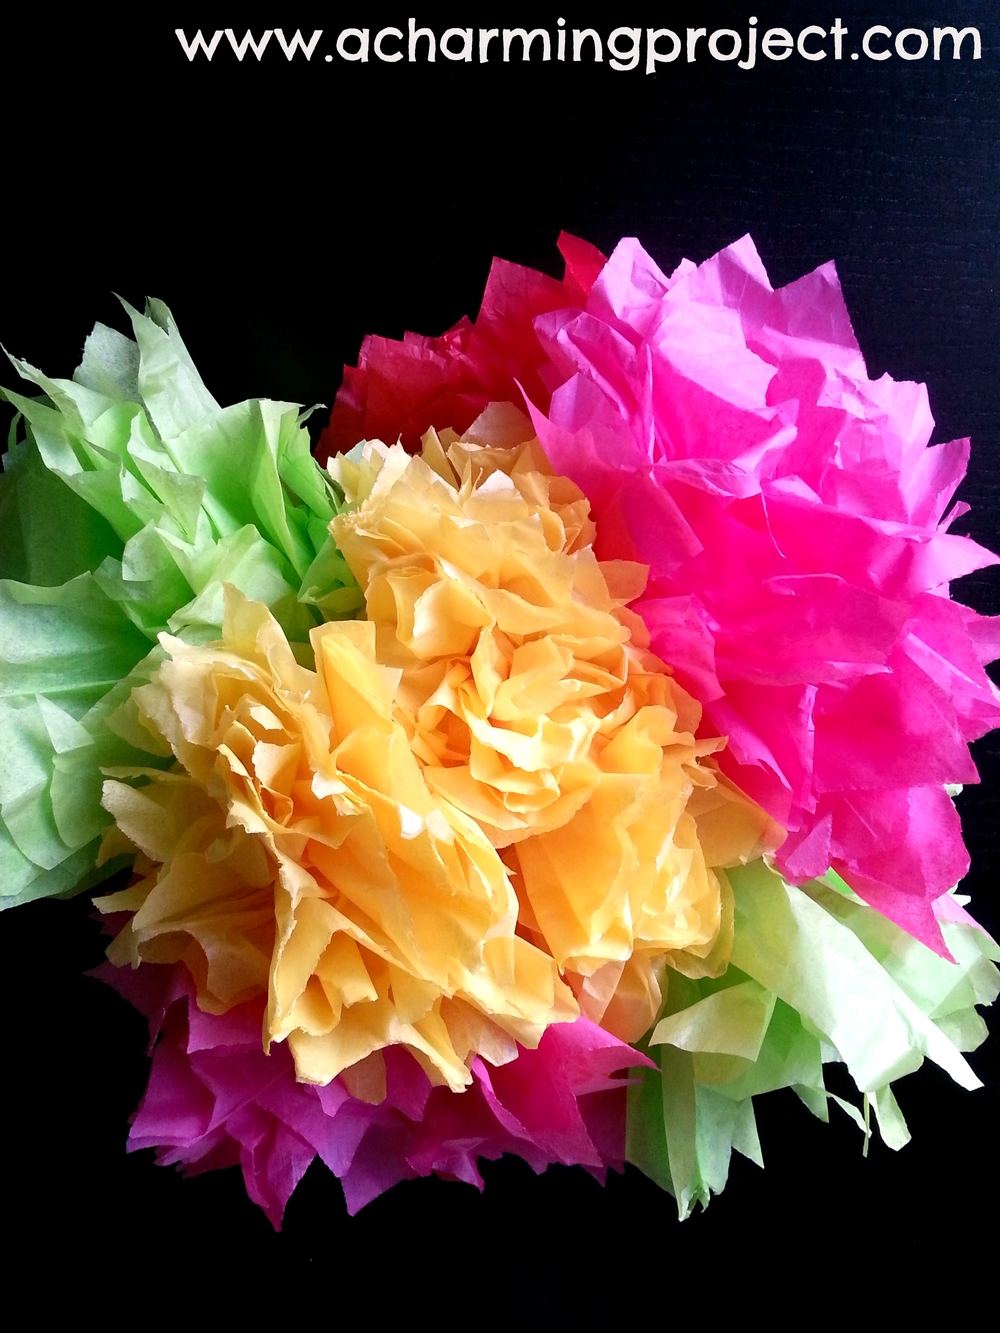 Festive fiesta flowers diy tutorial via www.acharmingproject.com